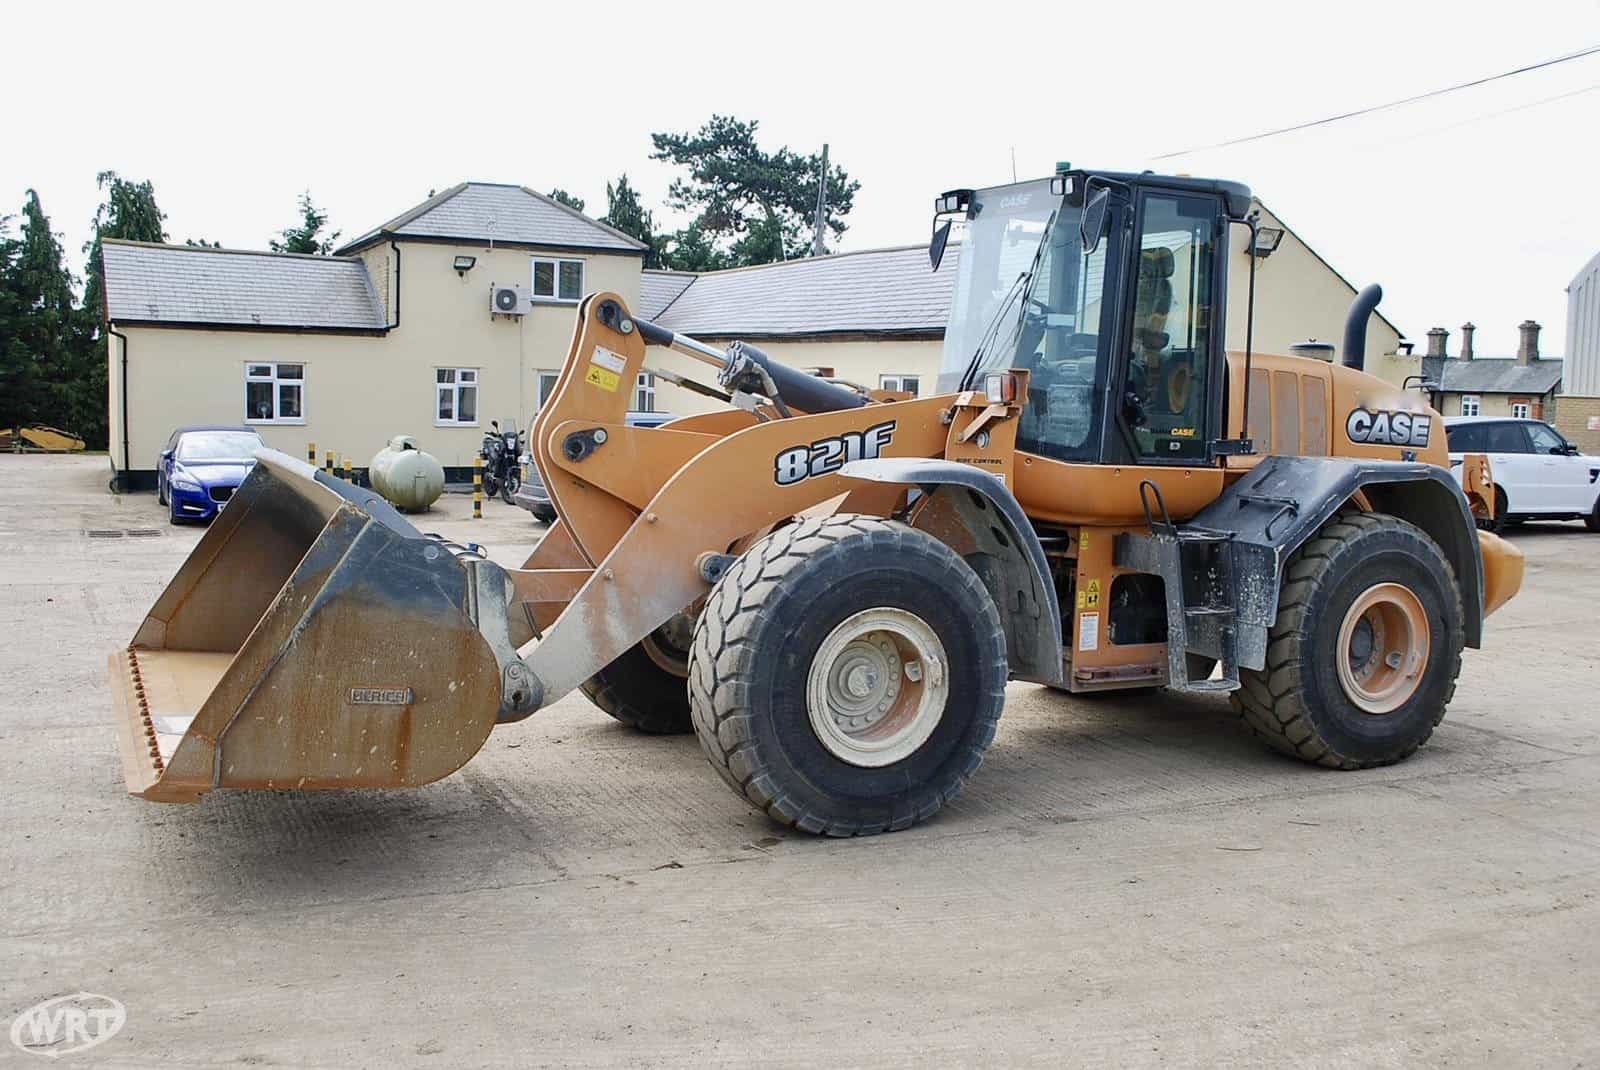 CASE 821F Wheeled Loader